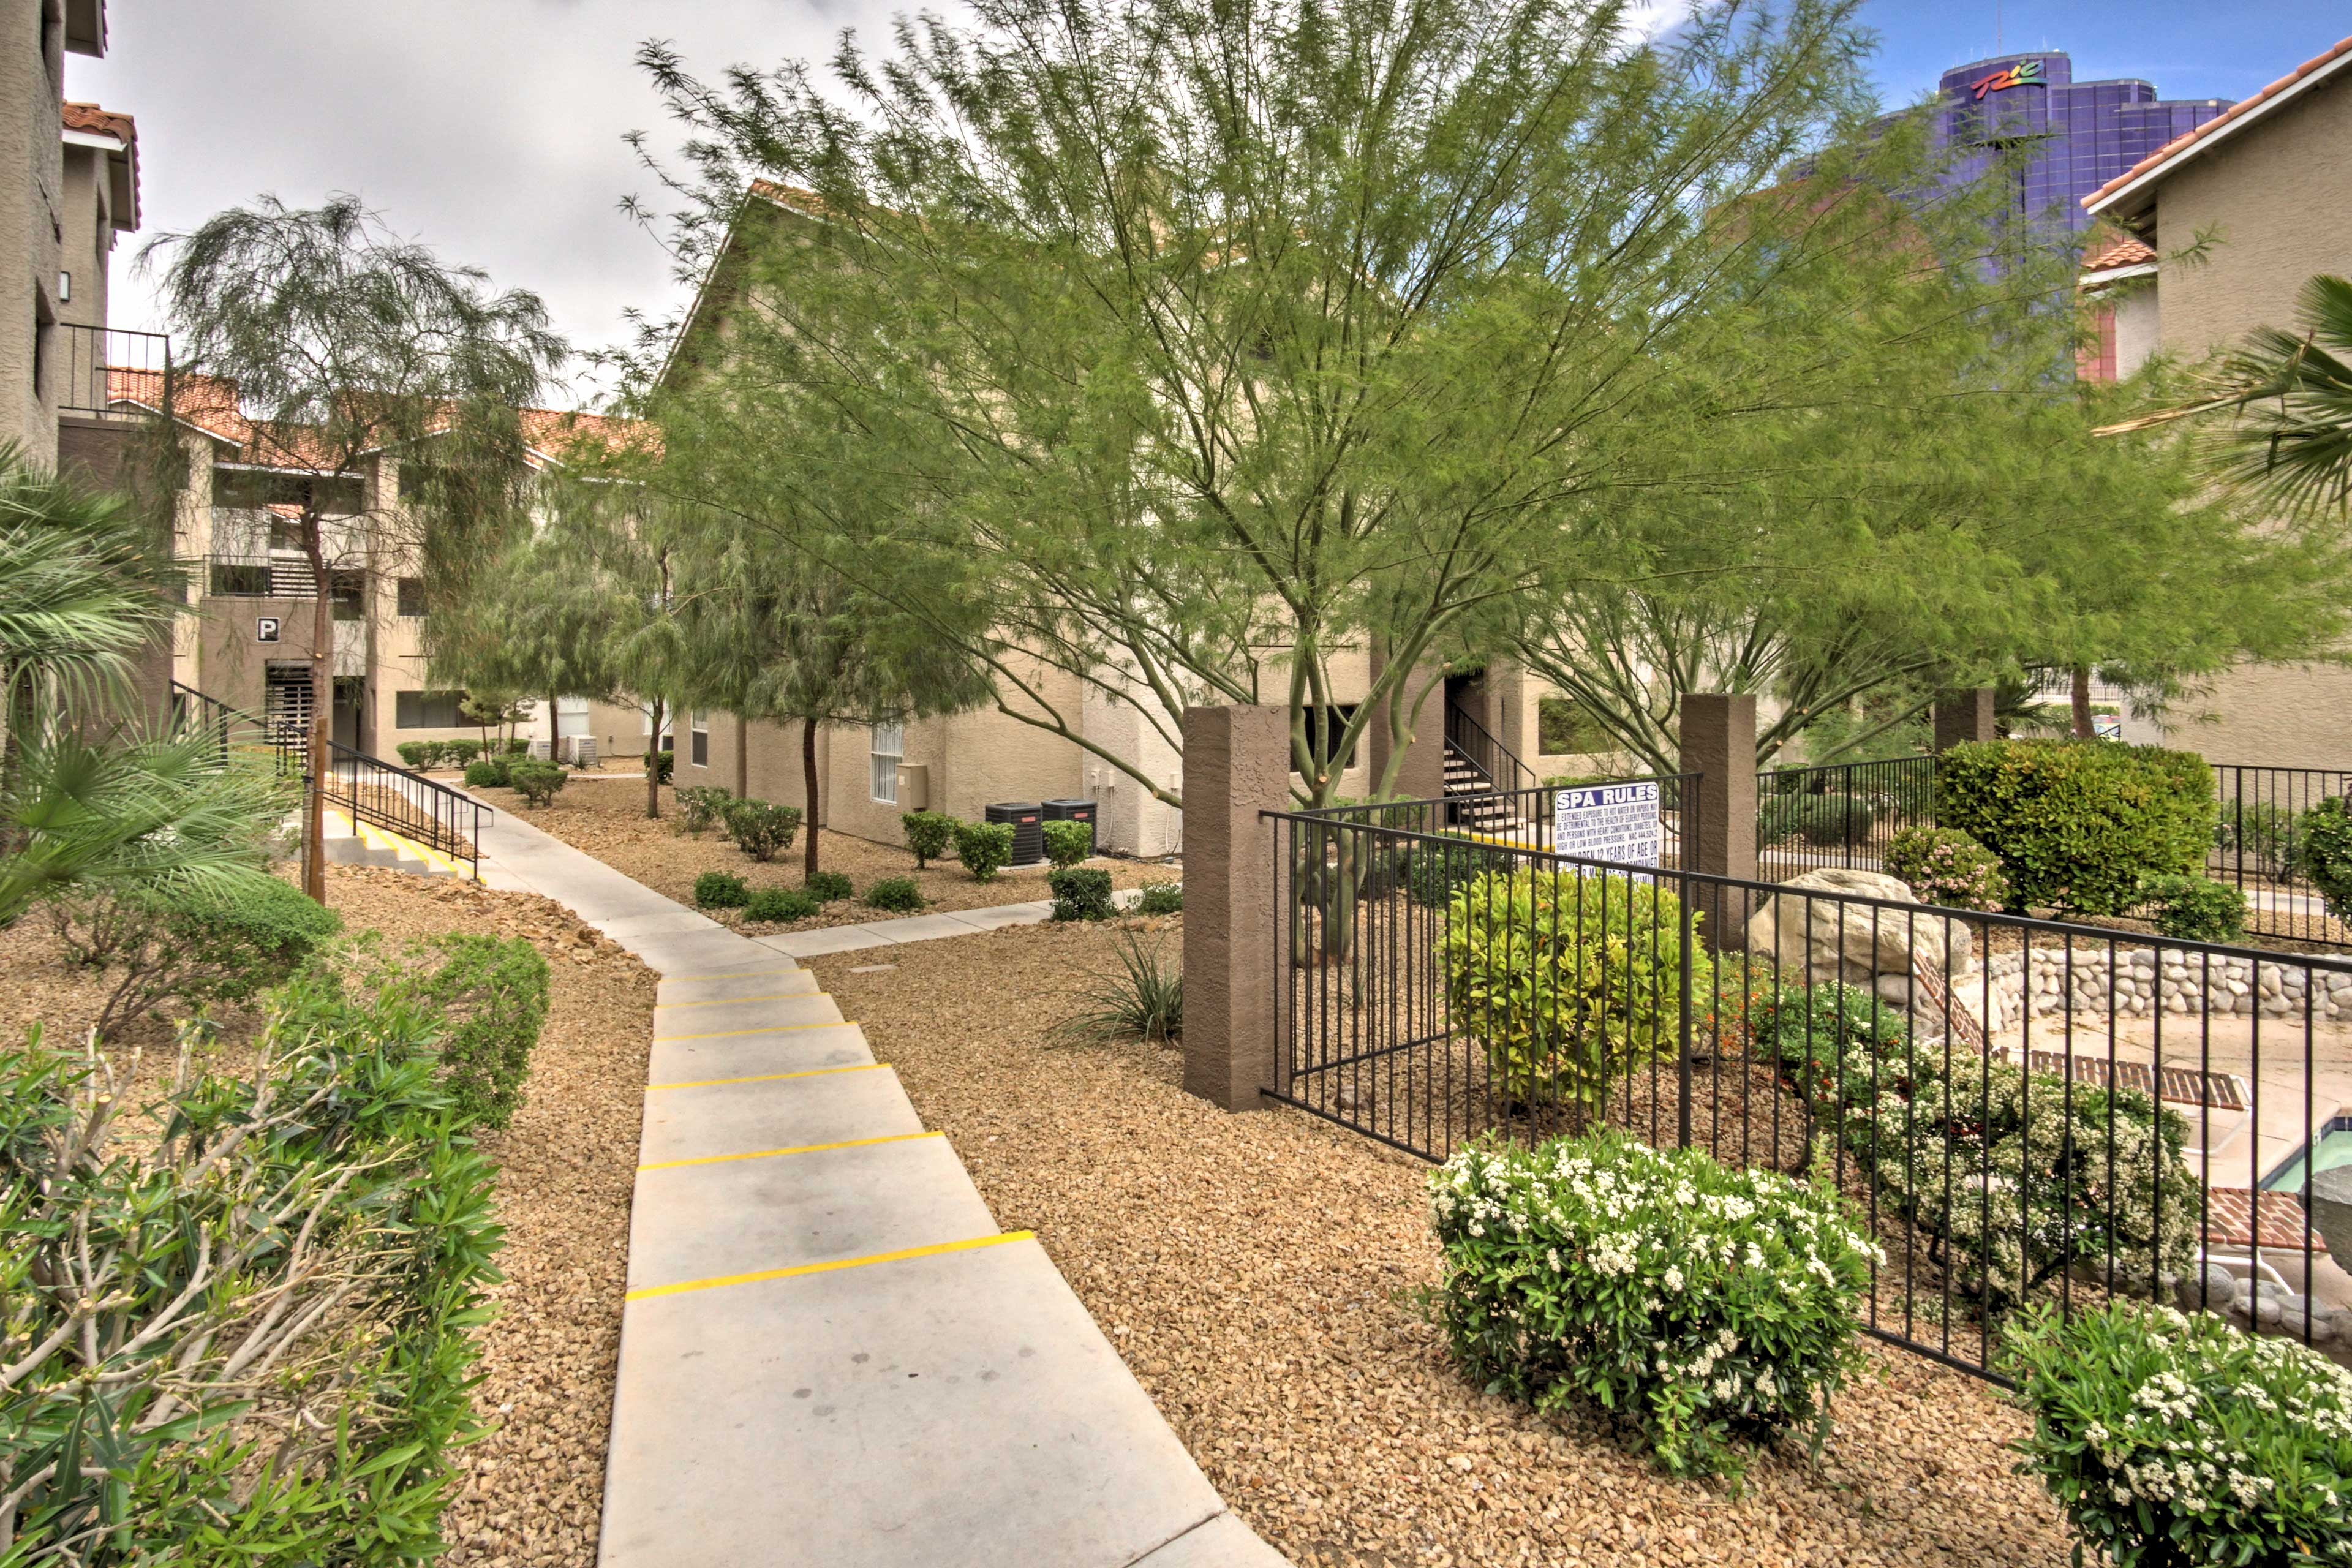 Relish the community's manicured and groomed gardens that surround the property.